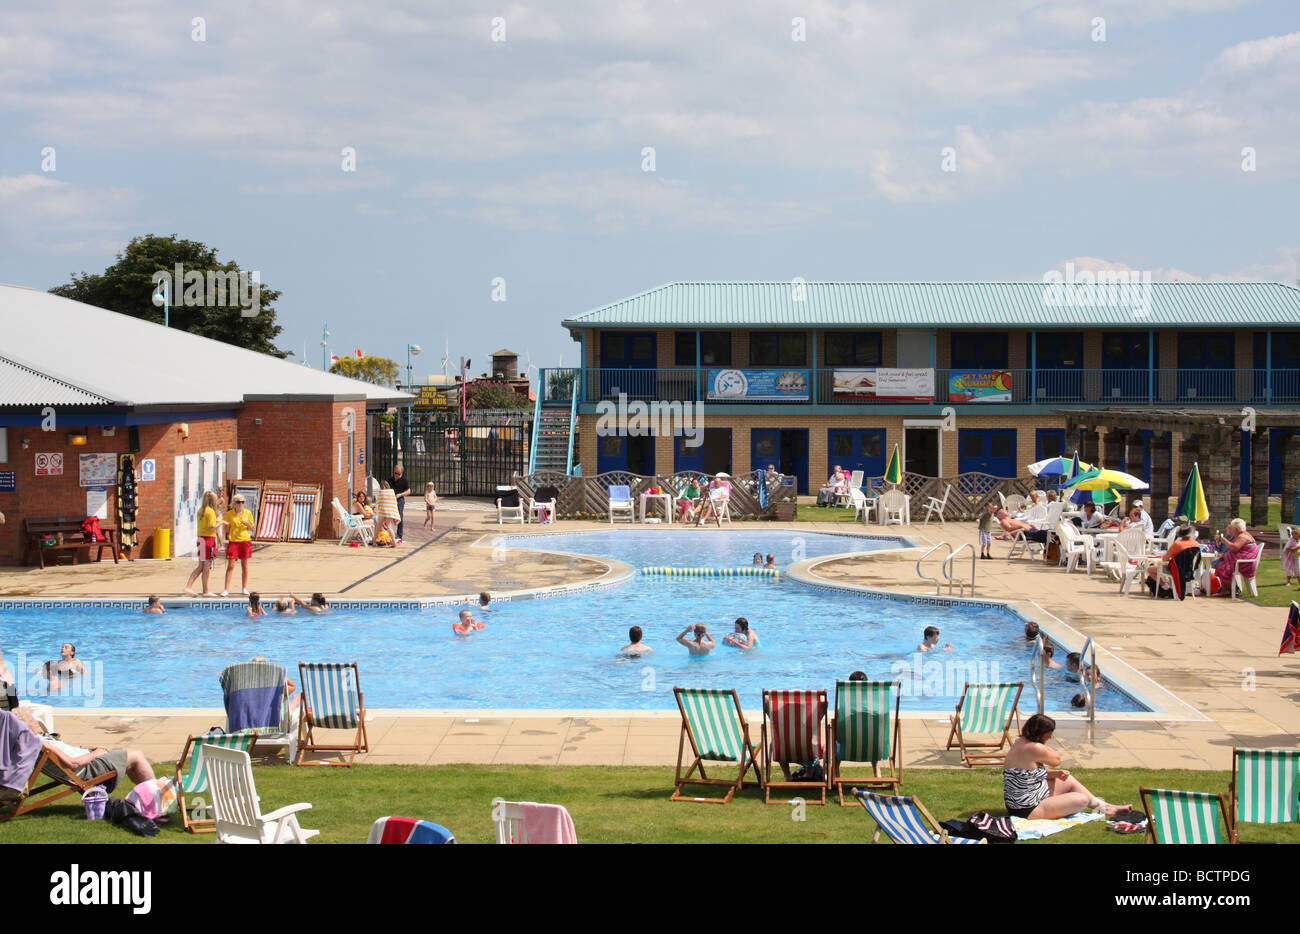 An outdoor swimming pool in skegness lincolnshire england u k stock photo royalty free image for Outdoor swimming pools in england